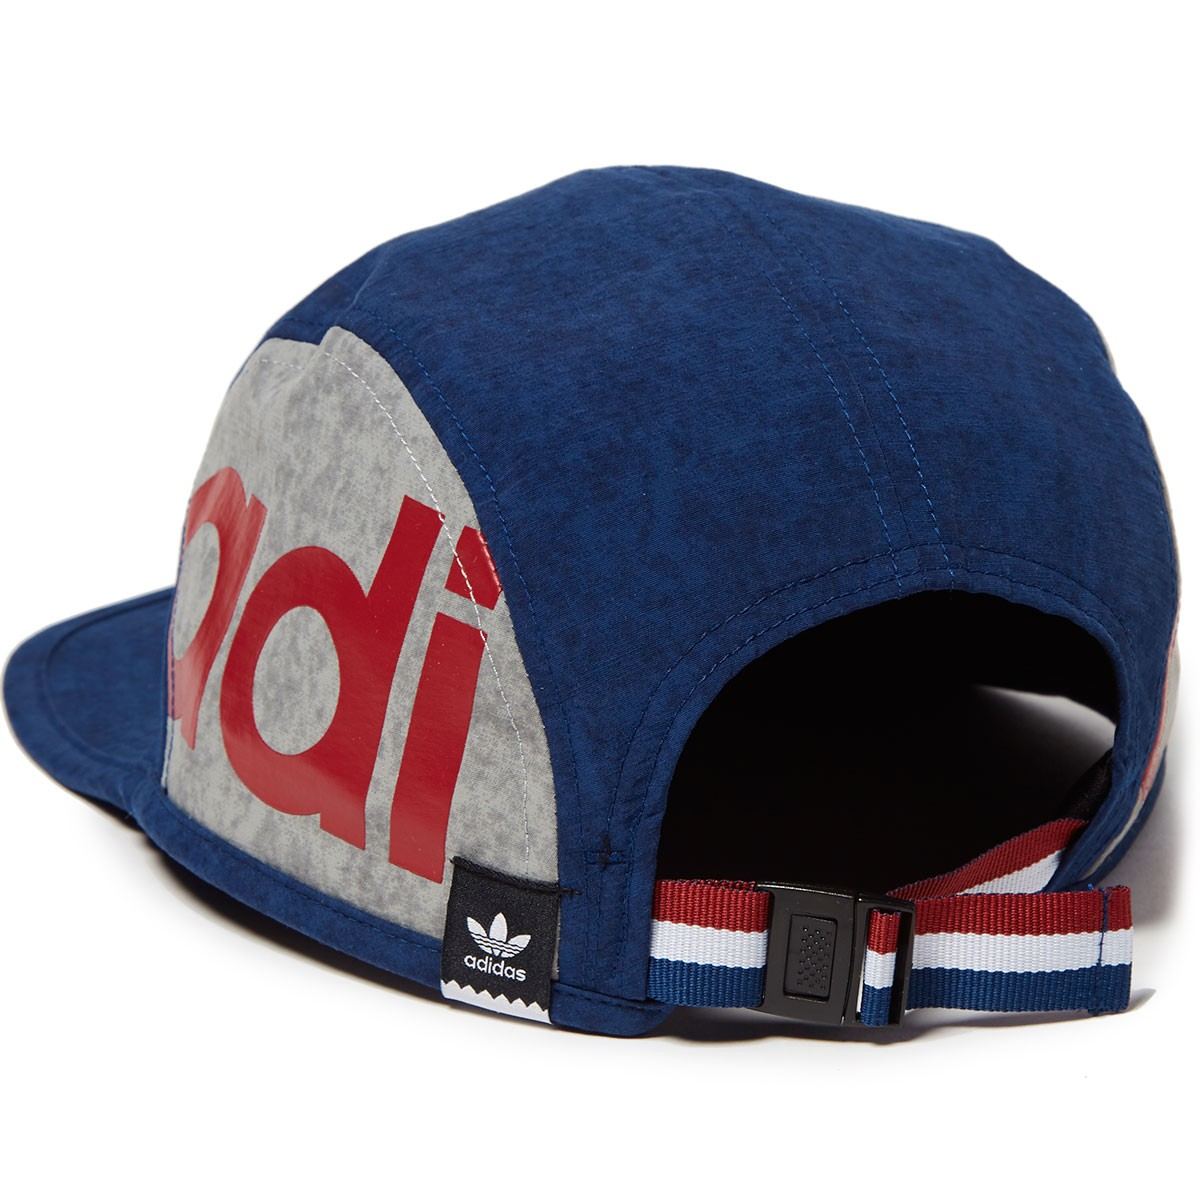 9272246da5d Adidas Nautical 5 Panel Hat - Mystery Blue